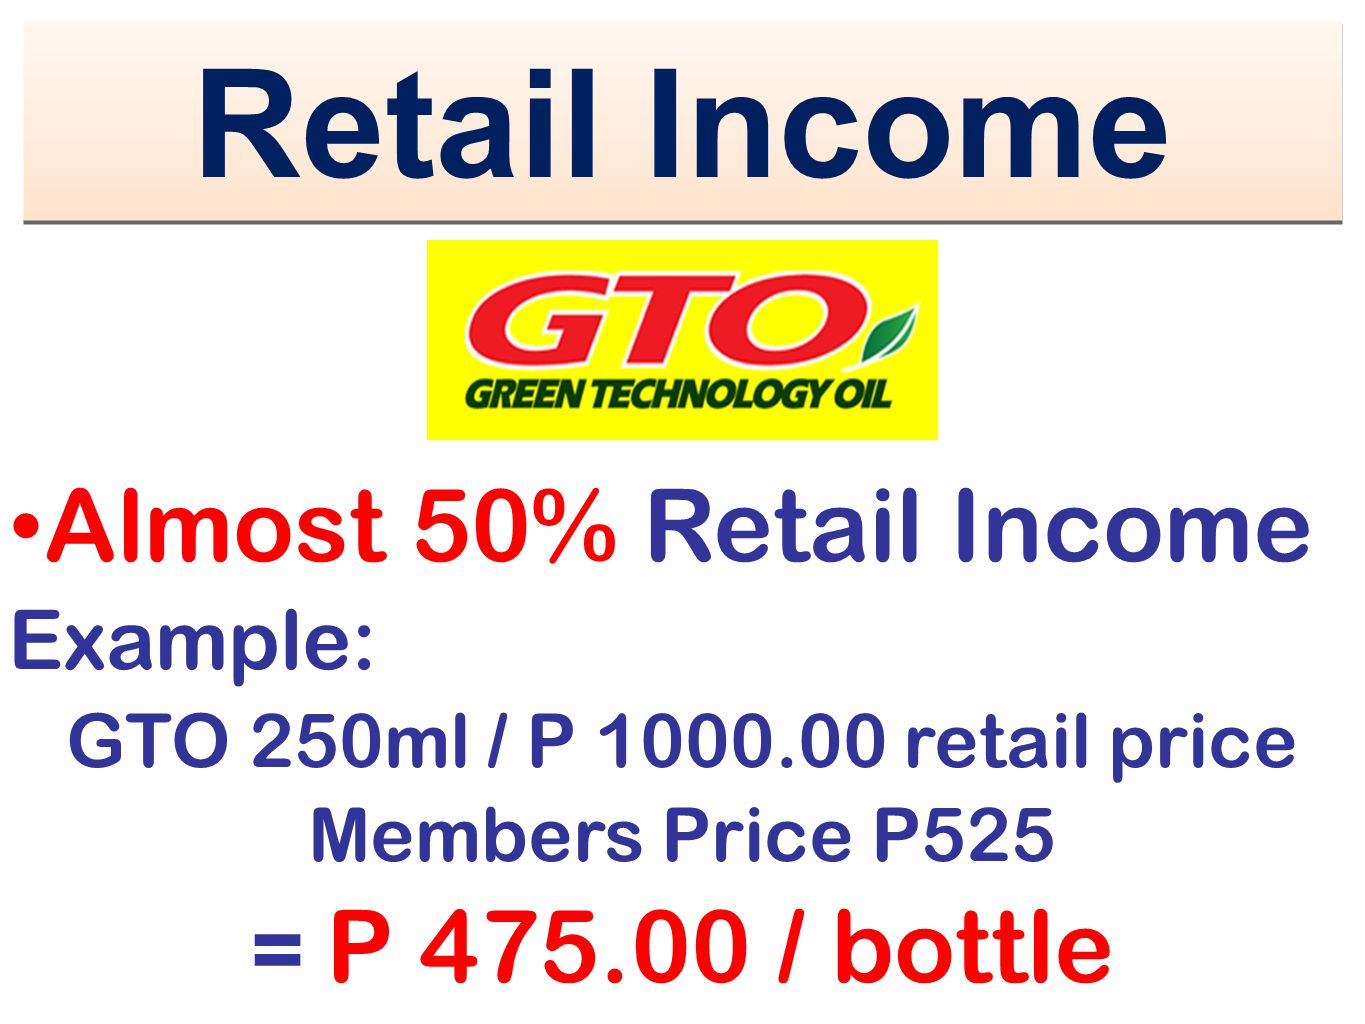 Retail Income Almost 50% Retail Income = P 475.00 / bottle Example: